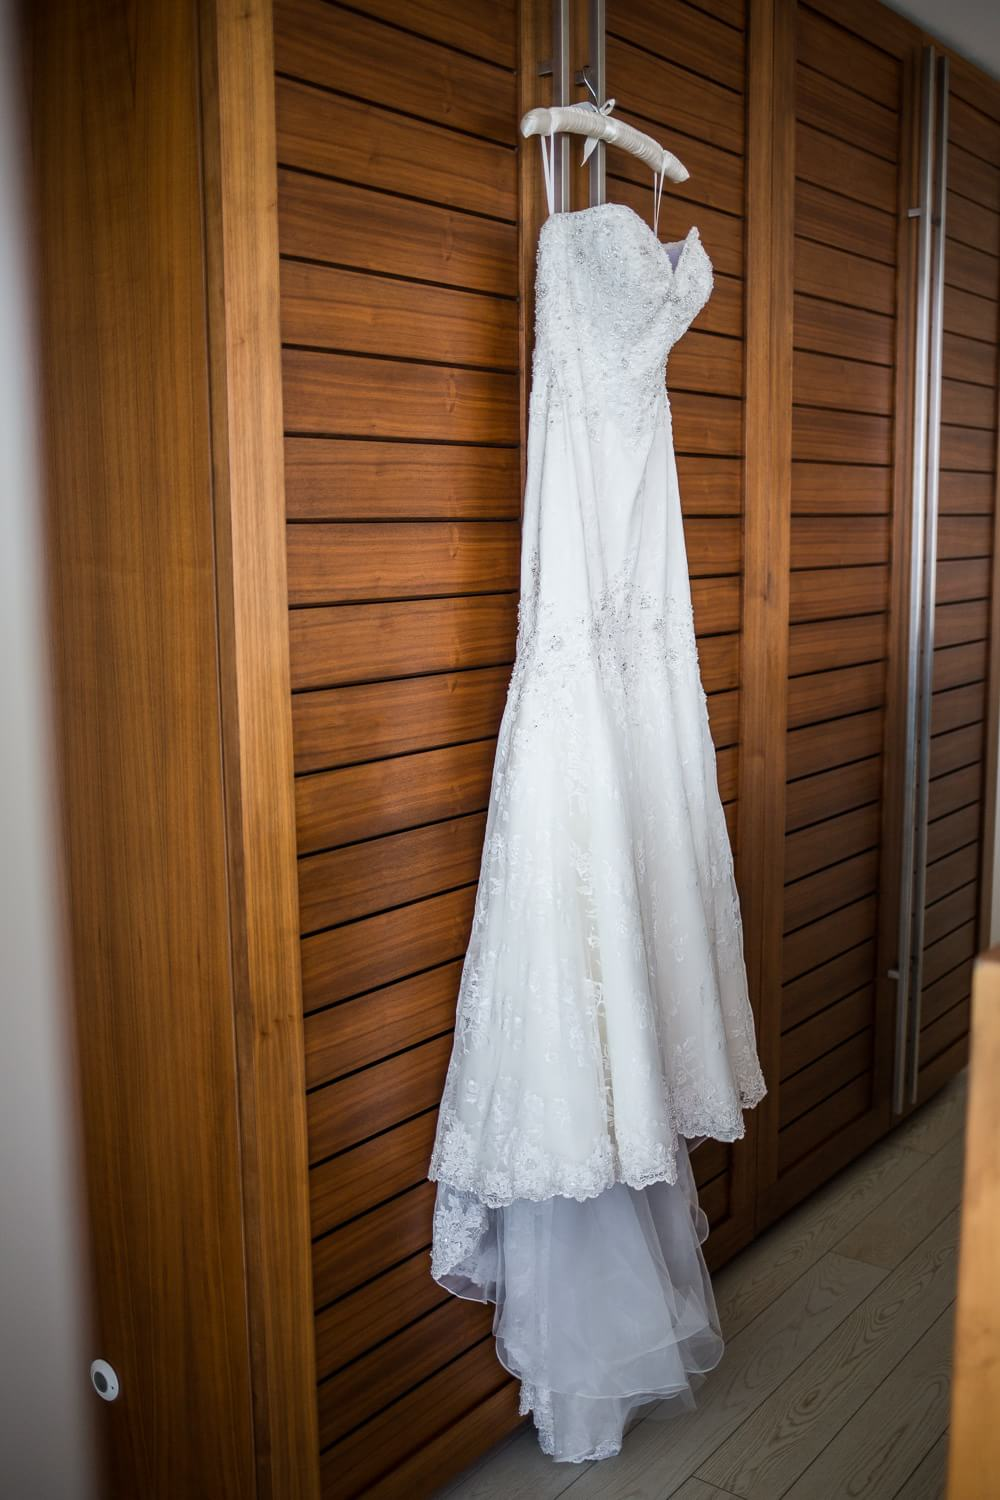 Dress hanging at Cancun wedding.